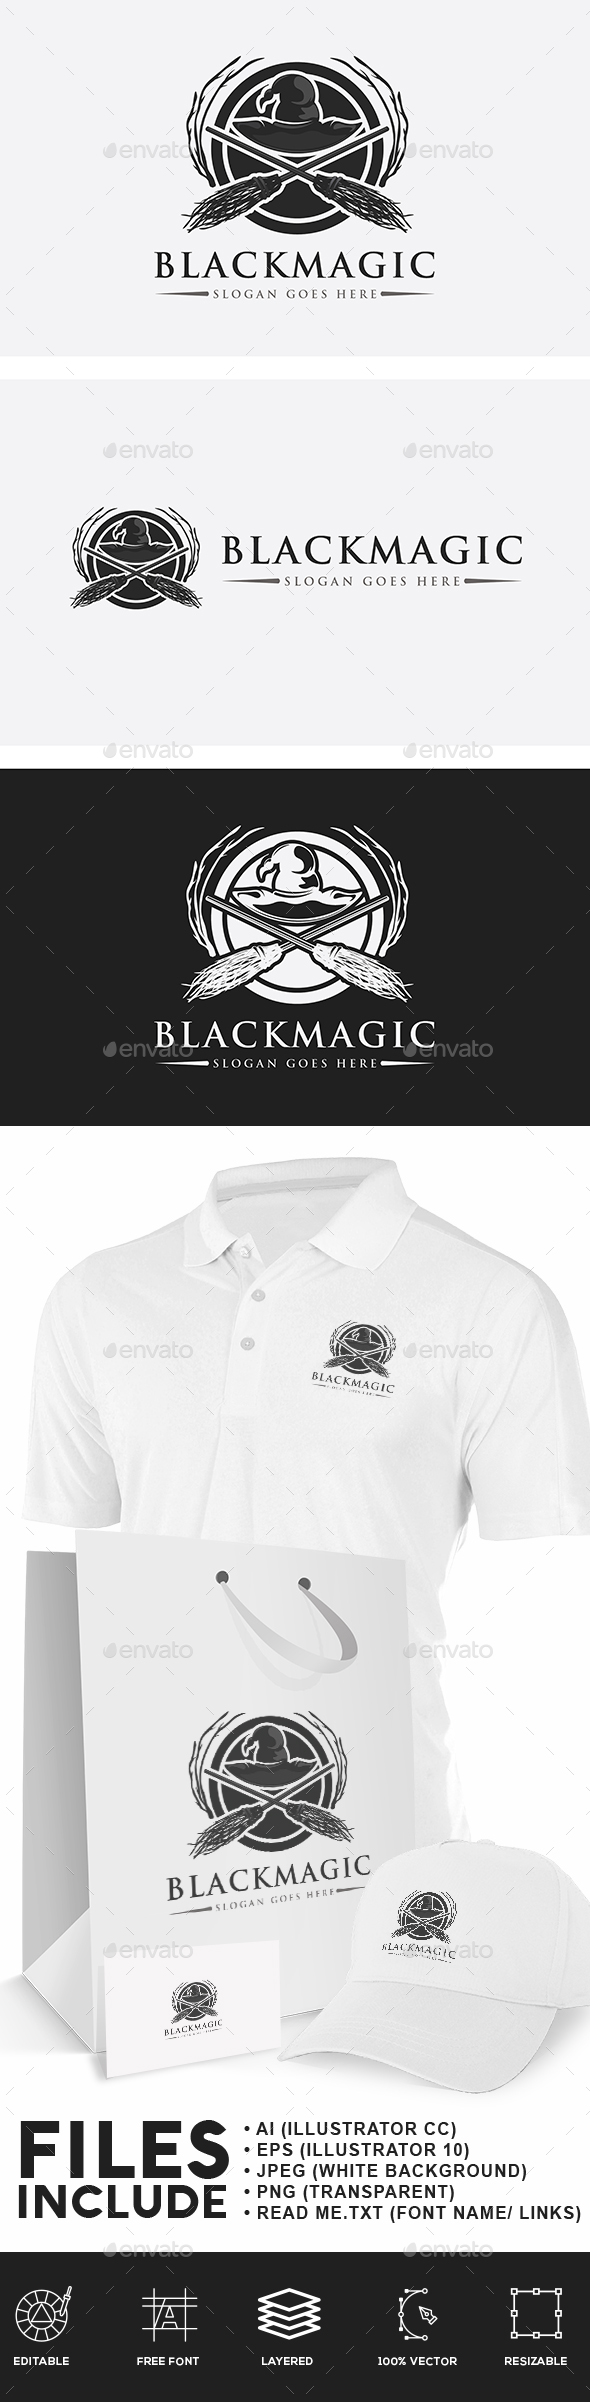 Black Magic Witches Logo - Objects Logo Templates